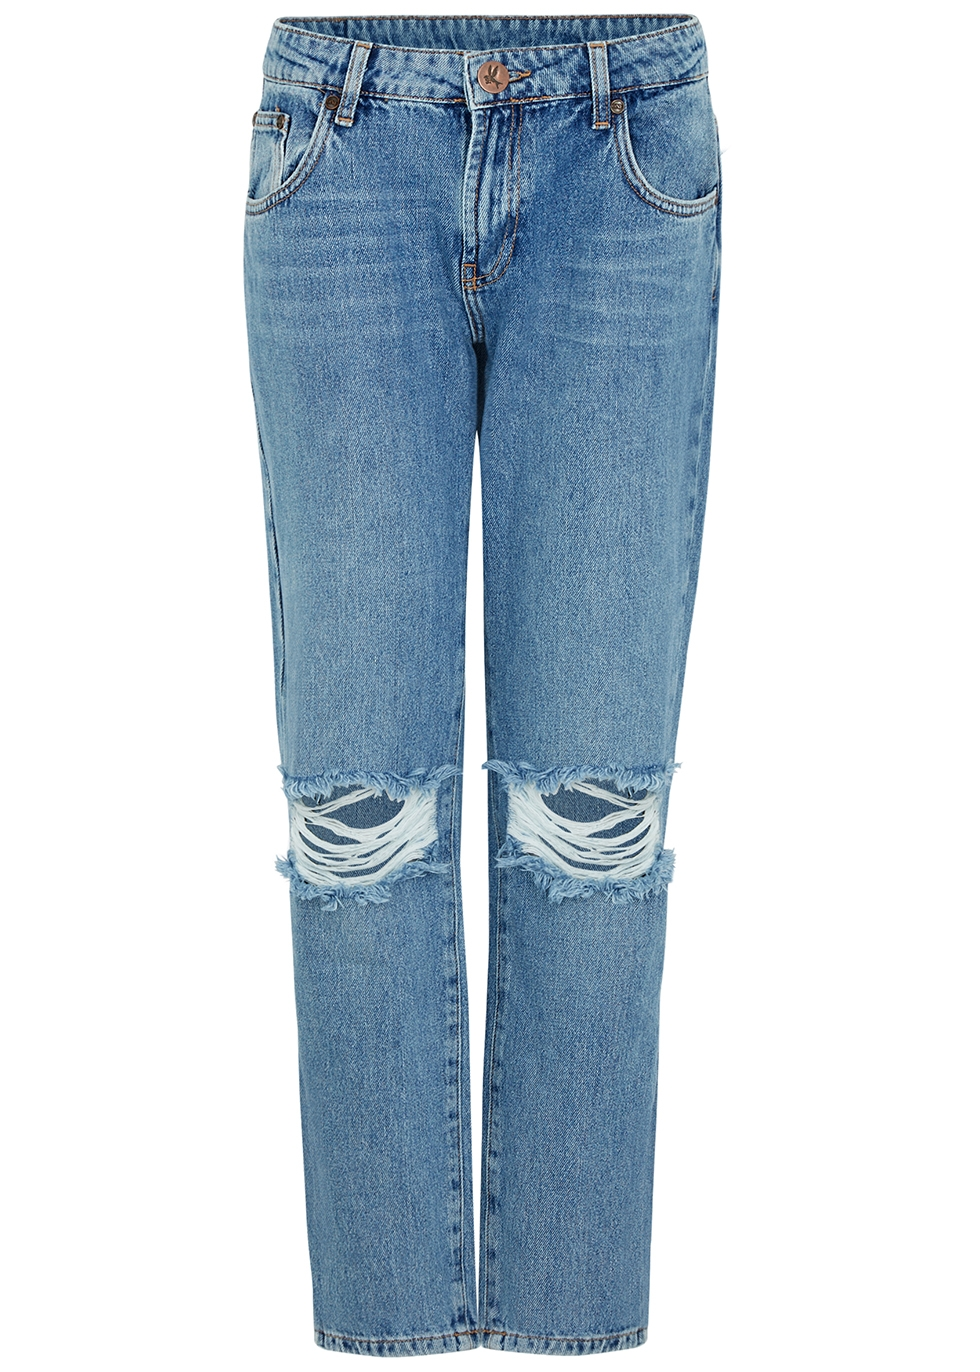 Pacifica Awesome Baggies blue ripped jeans